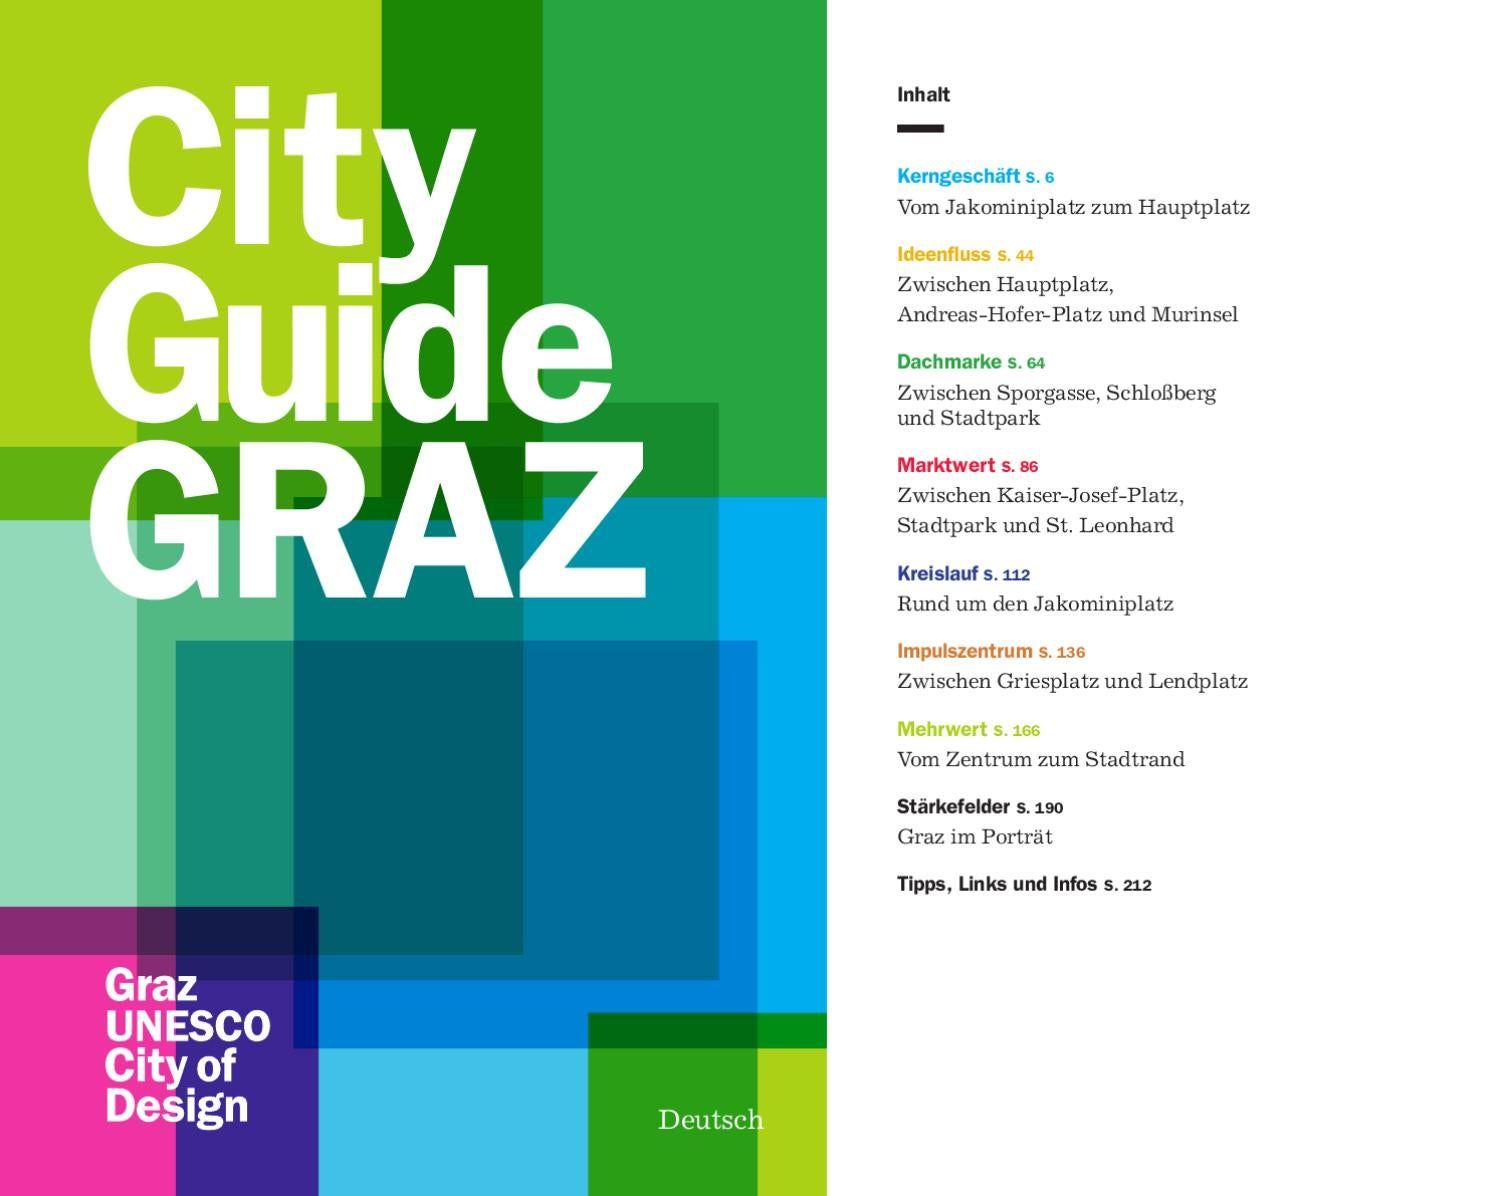 Zitronenbaum Kaufen Hofer City Guide Graz By Syrous Abtine Issuu